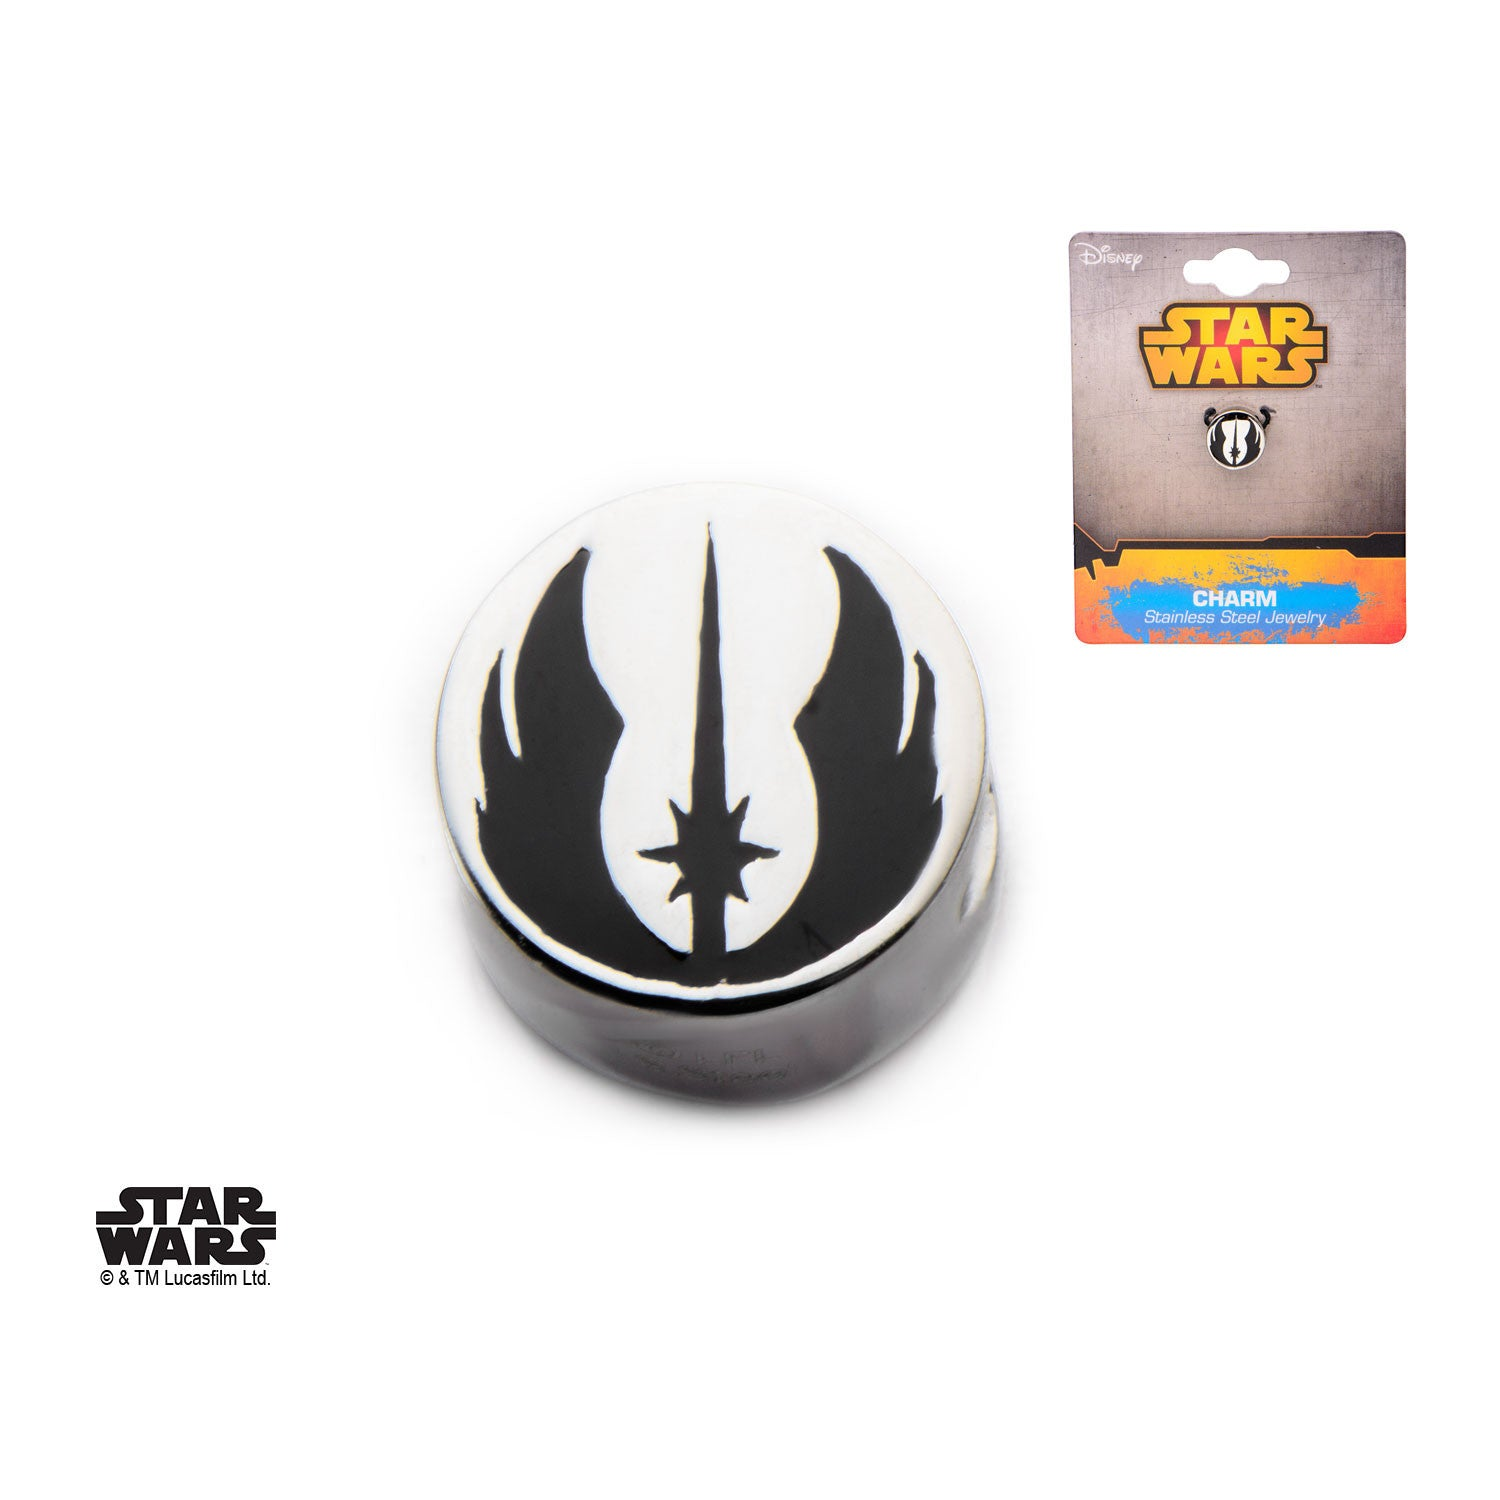 Star Wars Jedi Order Symbol Bead Charm 316 Stainless Steel